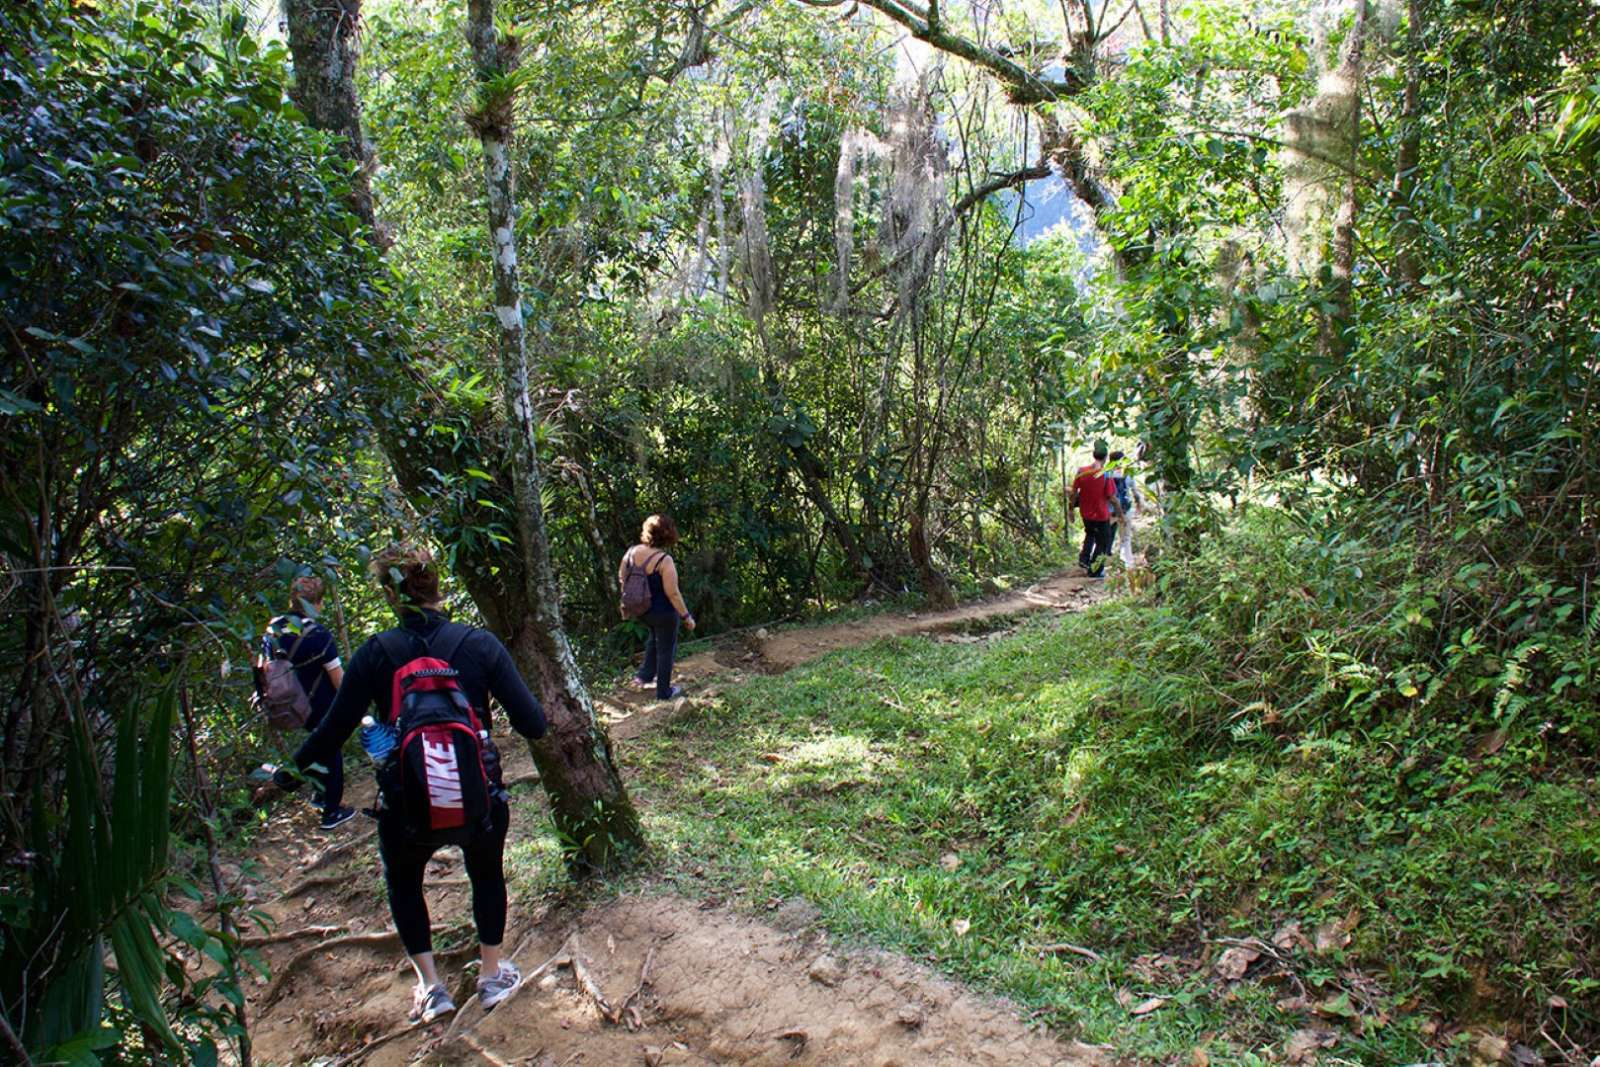 Trekking in the Sierra Maestra near Bayamo